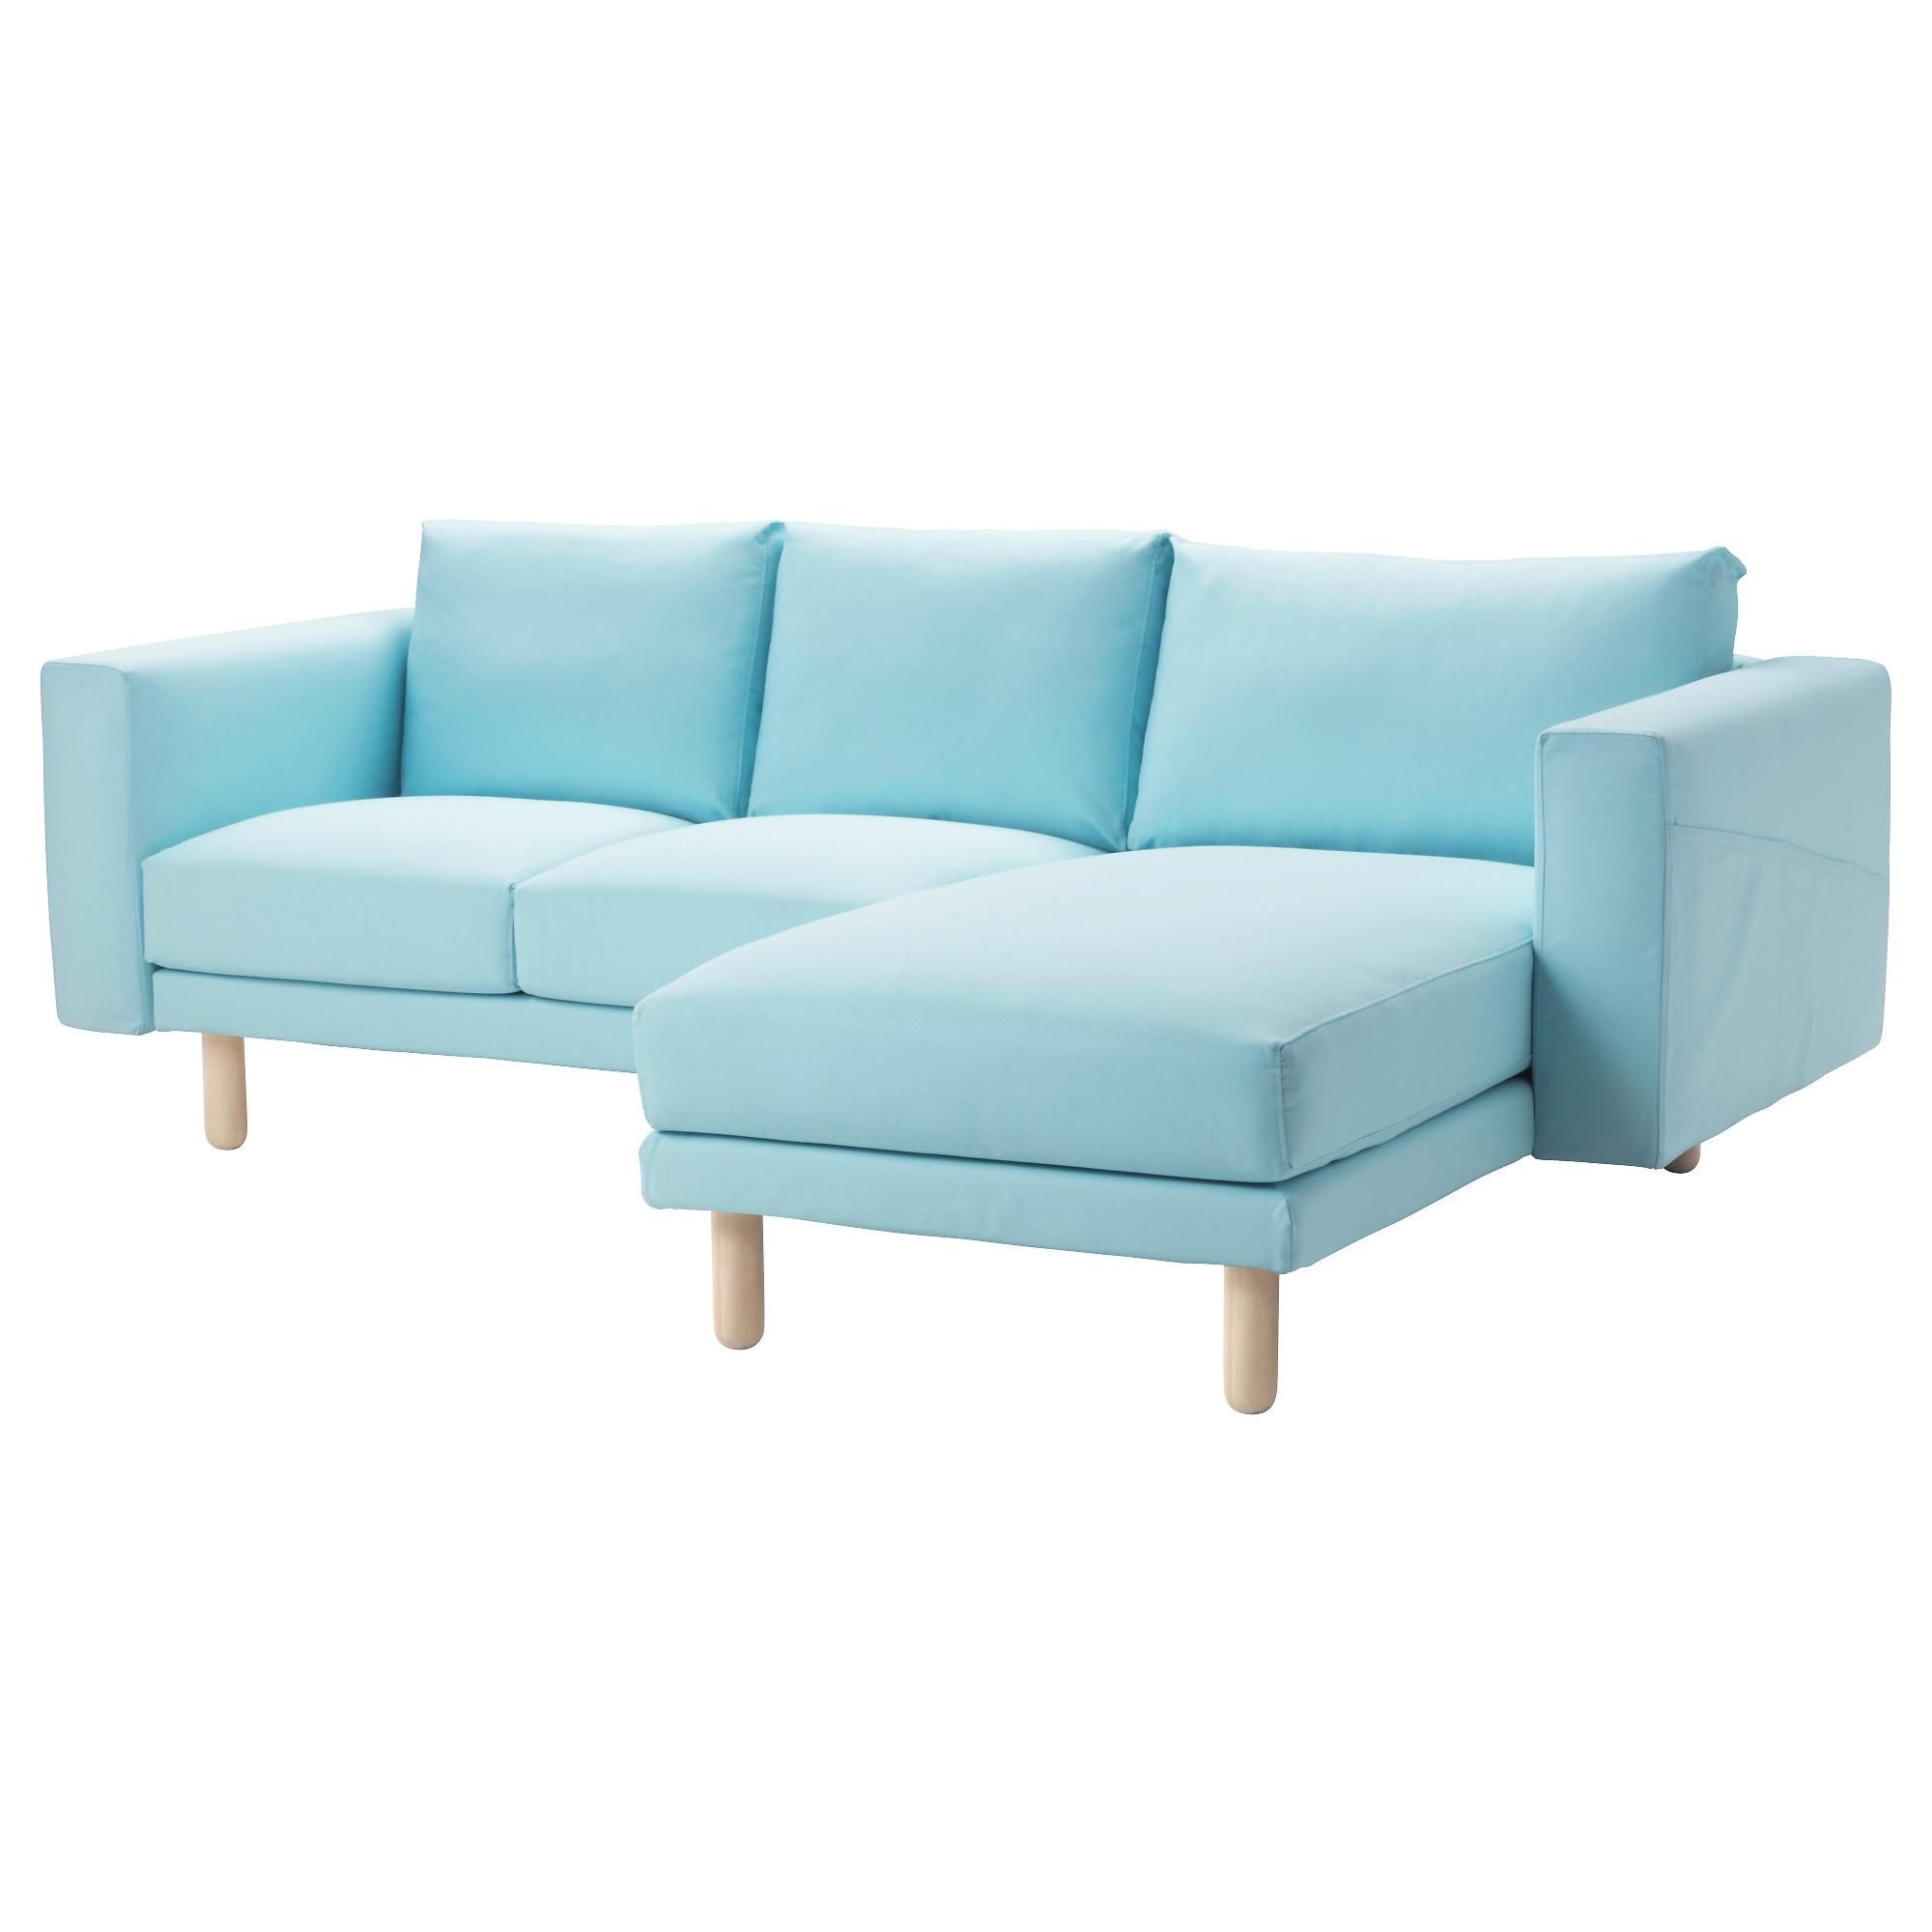 Norsborg Sectional, 3-Seat - Edum Light Blue, Birch - Ikea in Blue Sofa Chairs